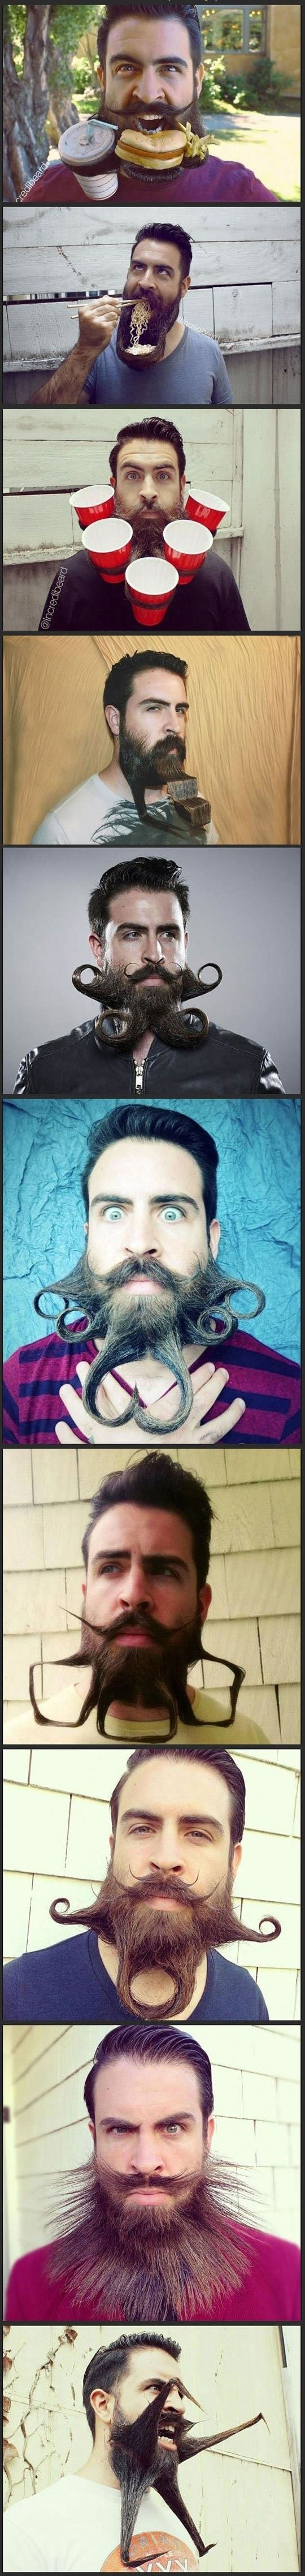 Meet Crazy Beard Guy